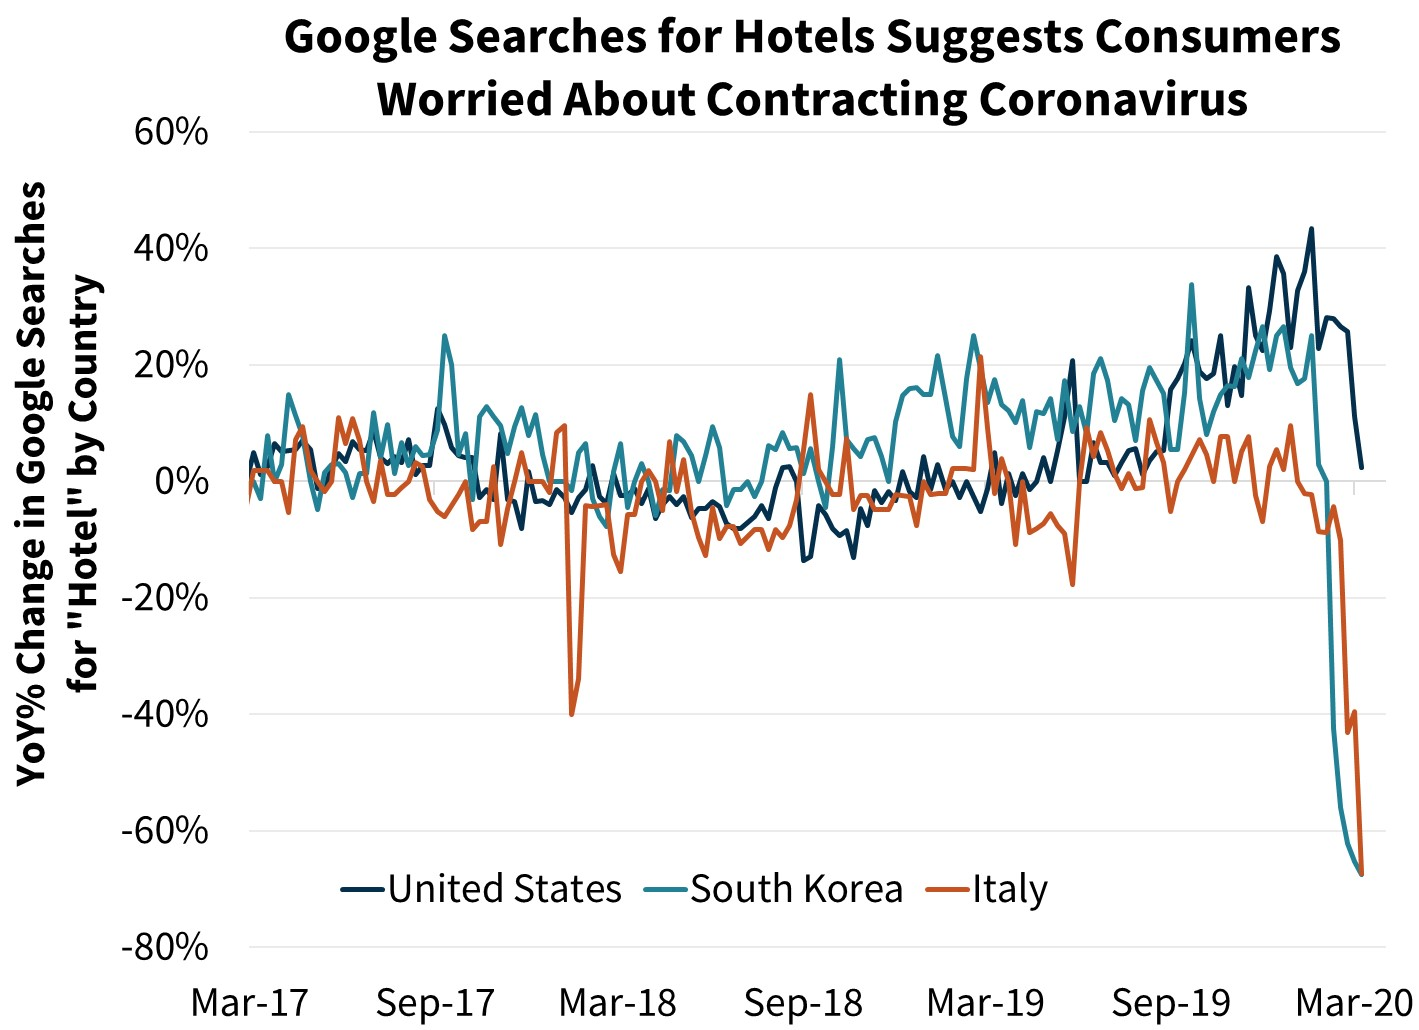 Google Searches for Hotels Suggests Consumers Worried About Contracting Coronavirus